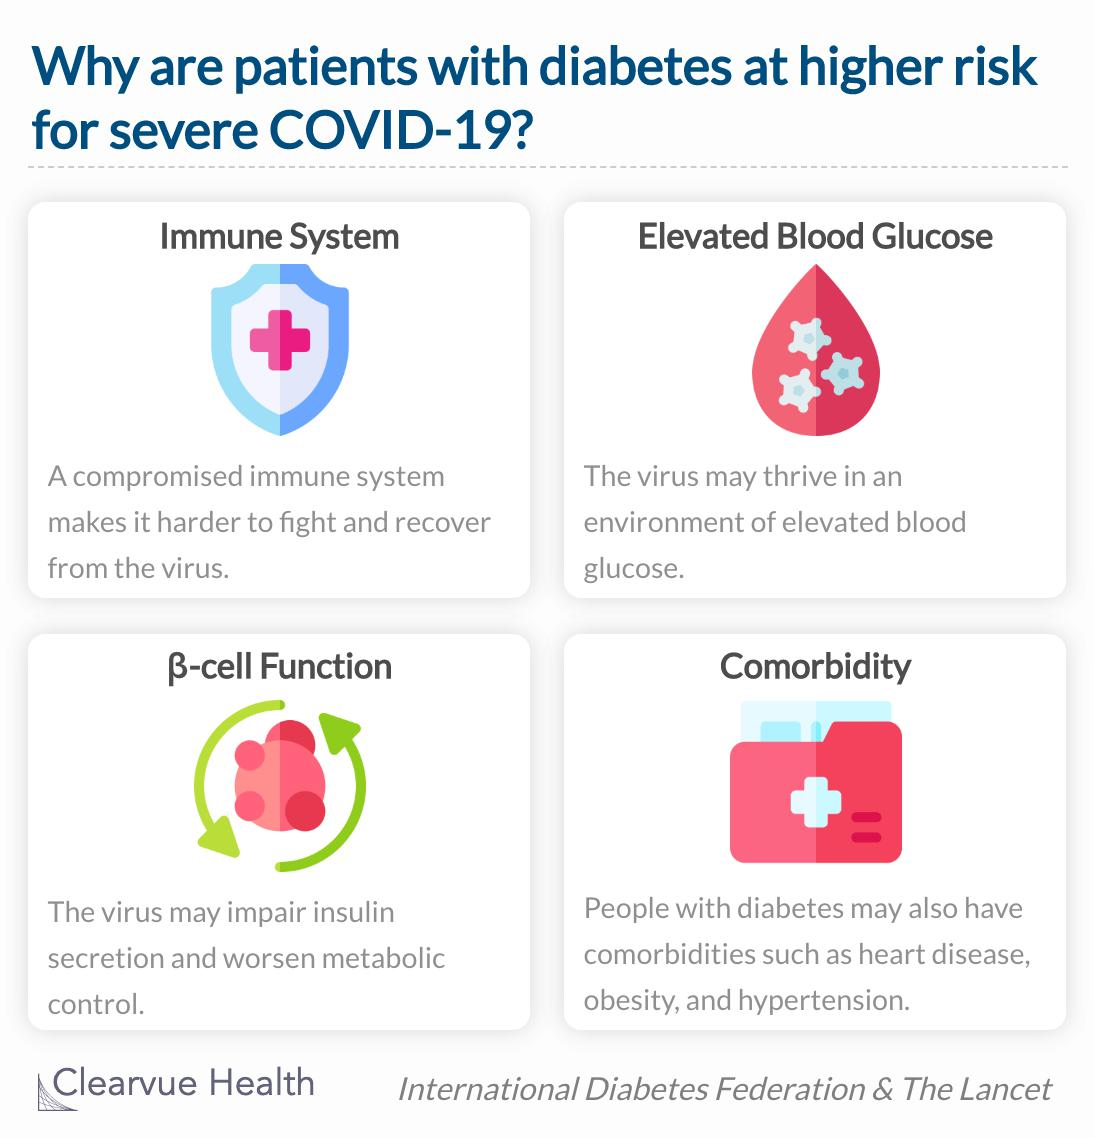 Diabetics are at higher risk of severe illness due to covid-19